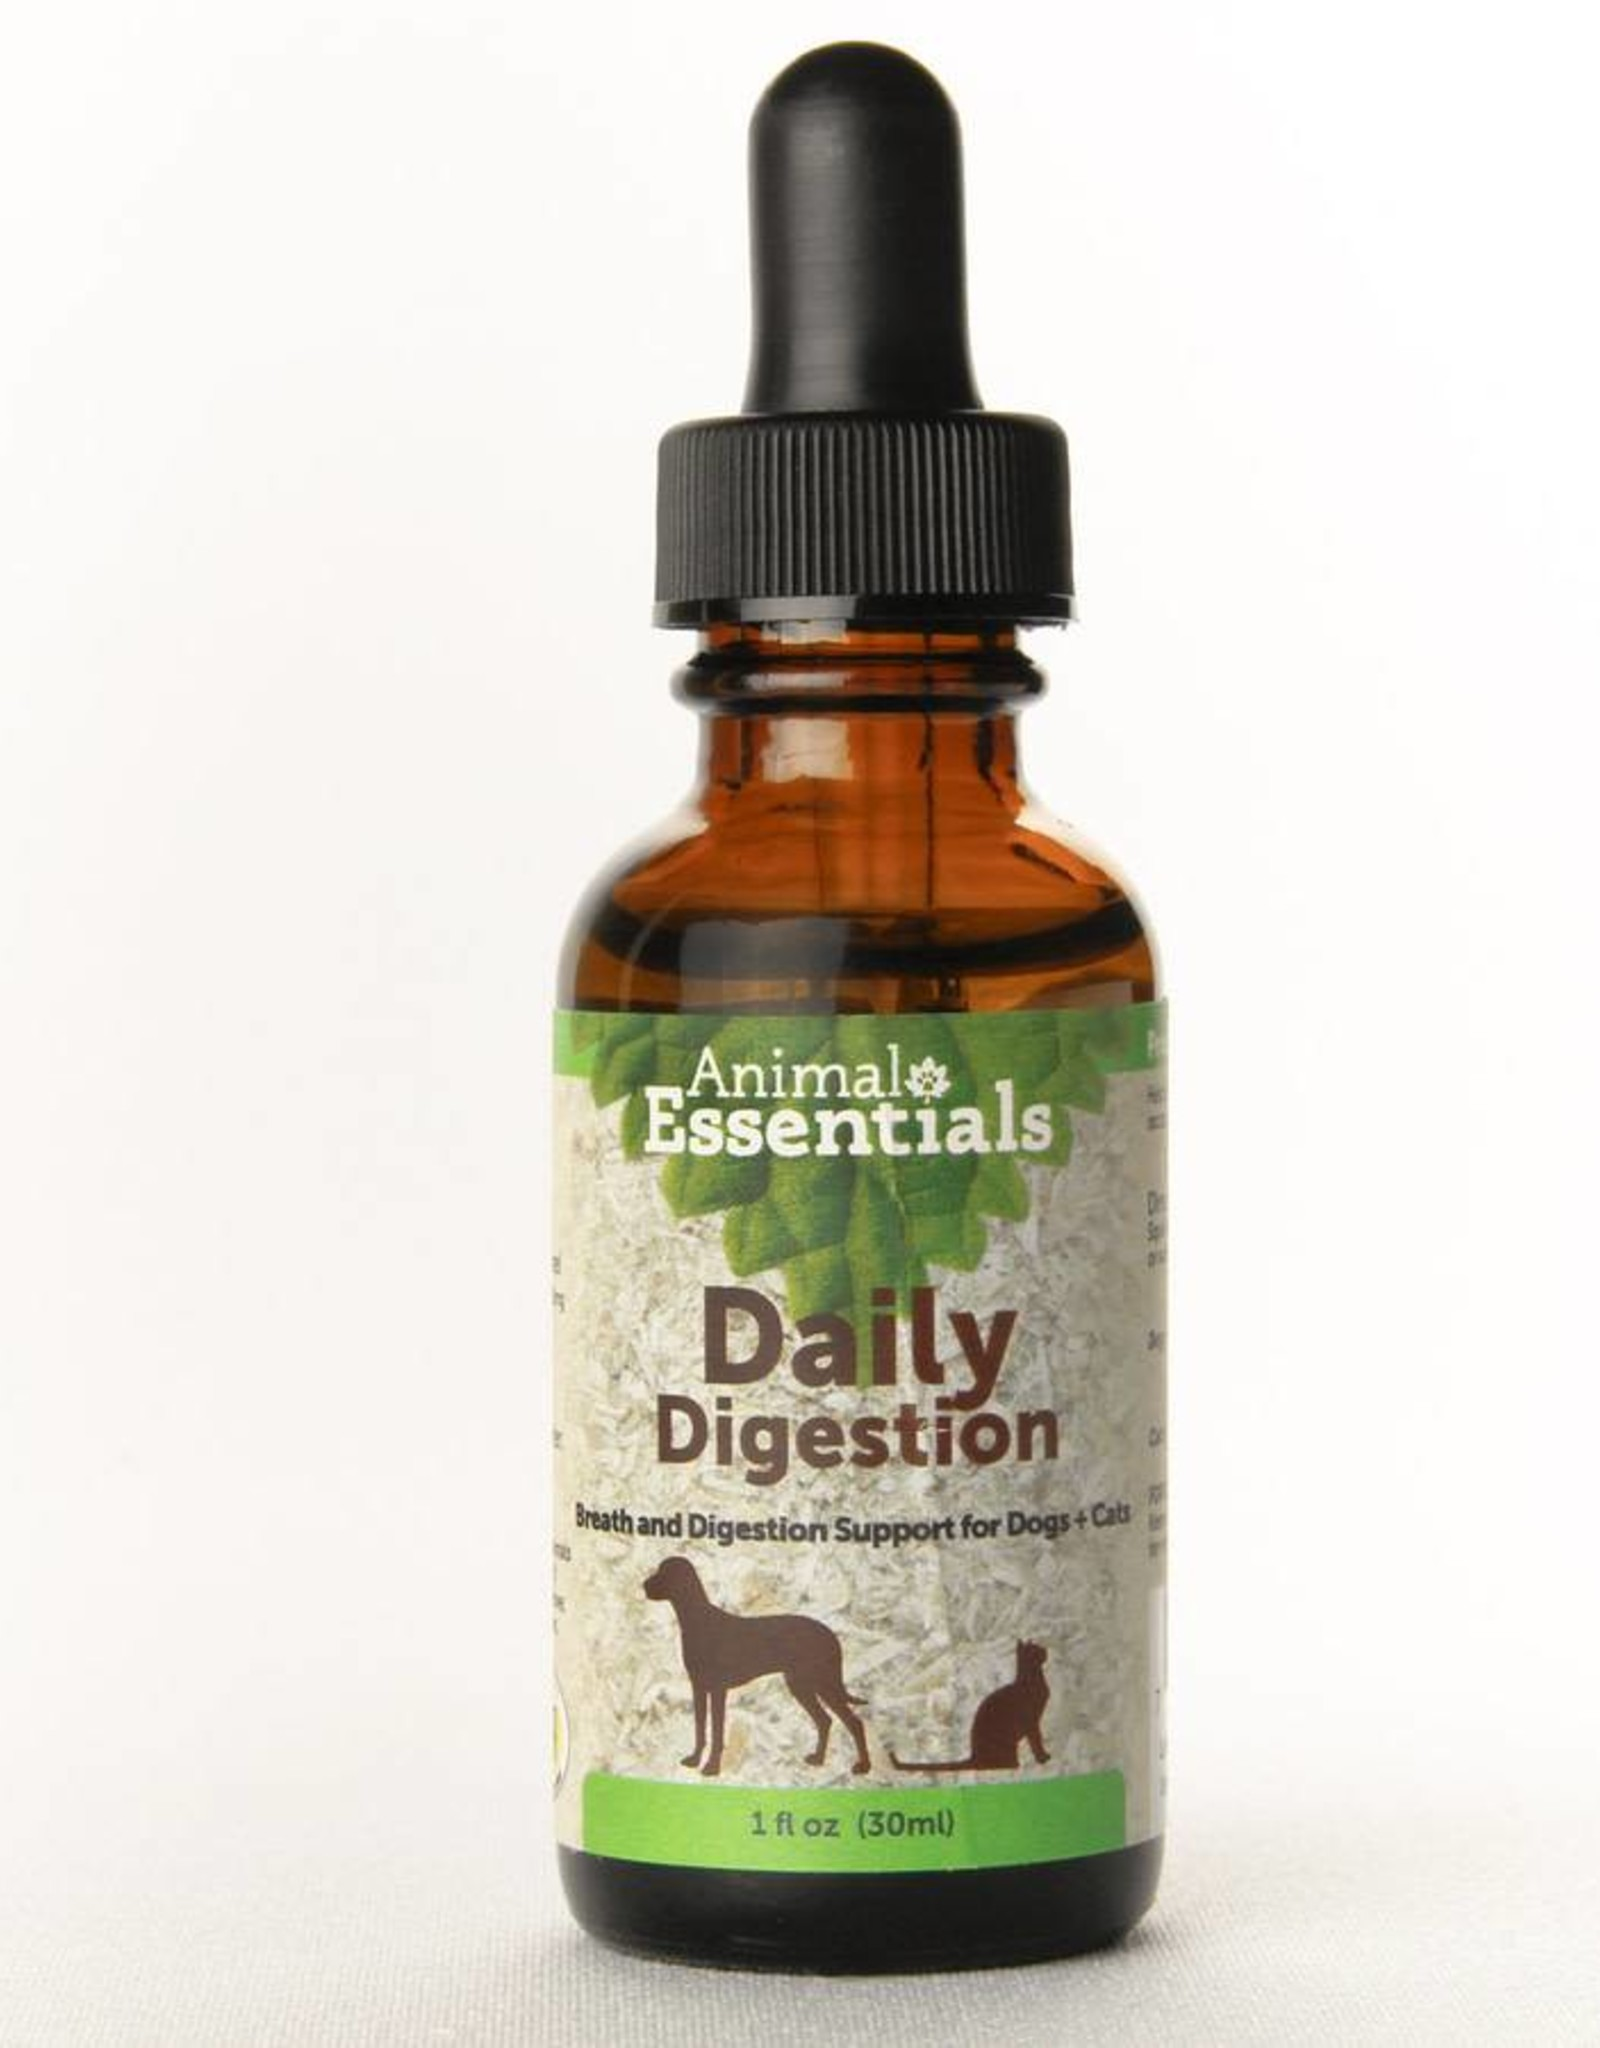 Animal Essentials Animal Essentials Daily Digestion 1oz